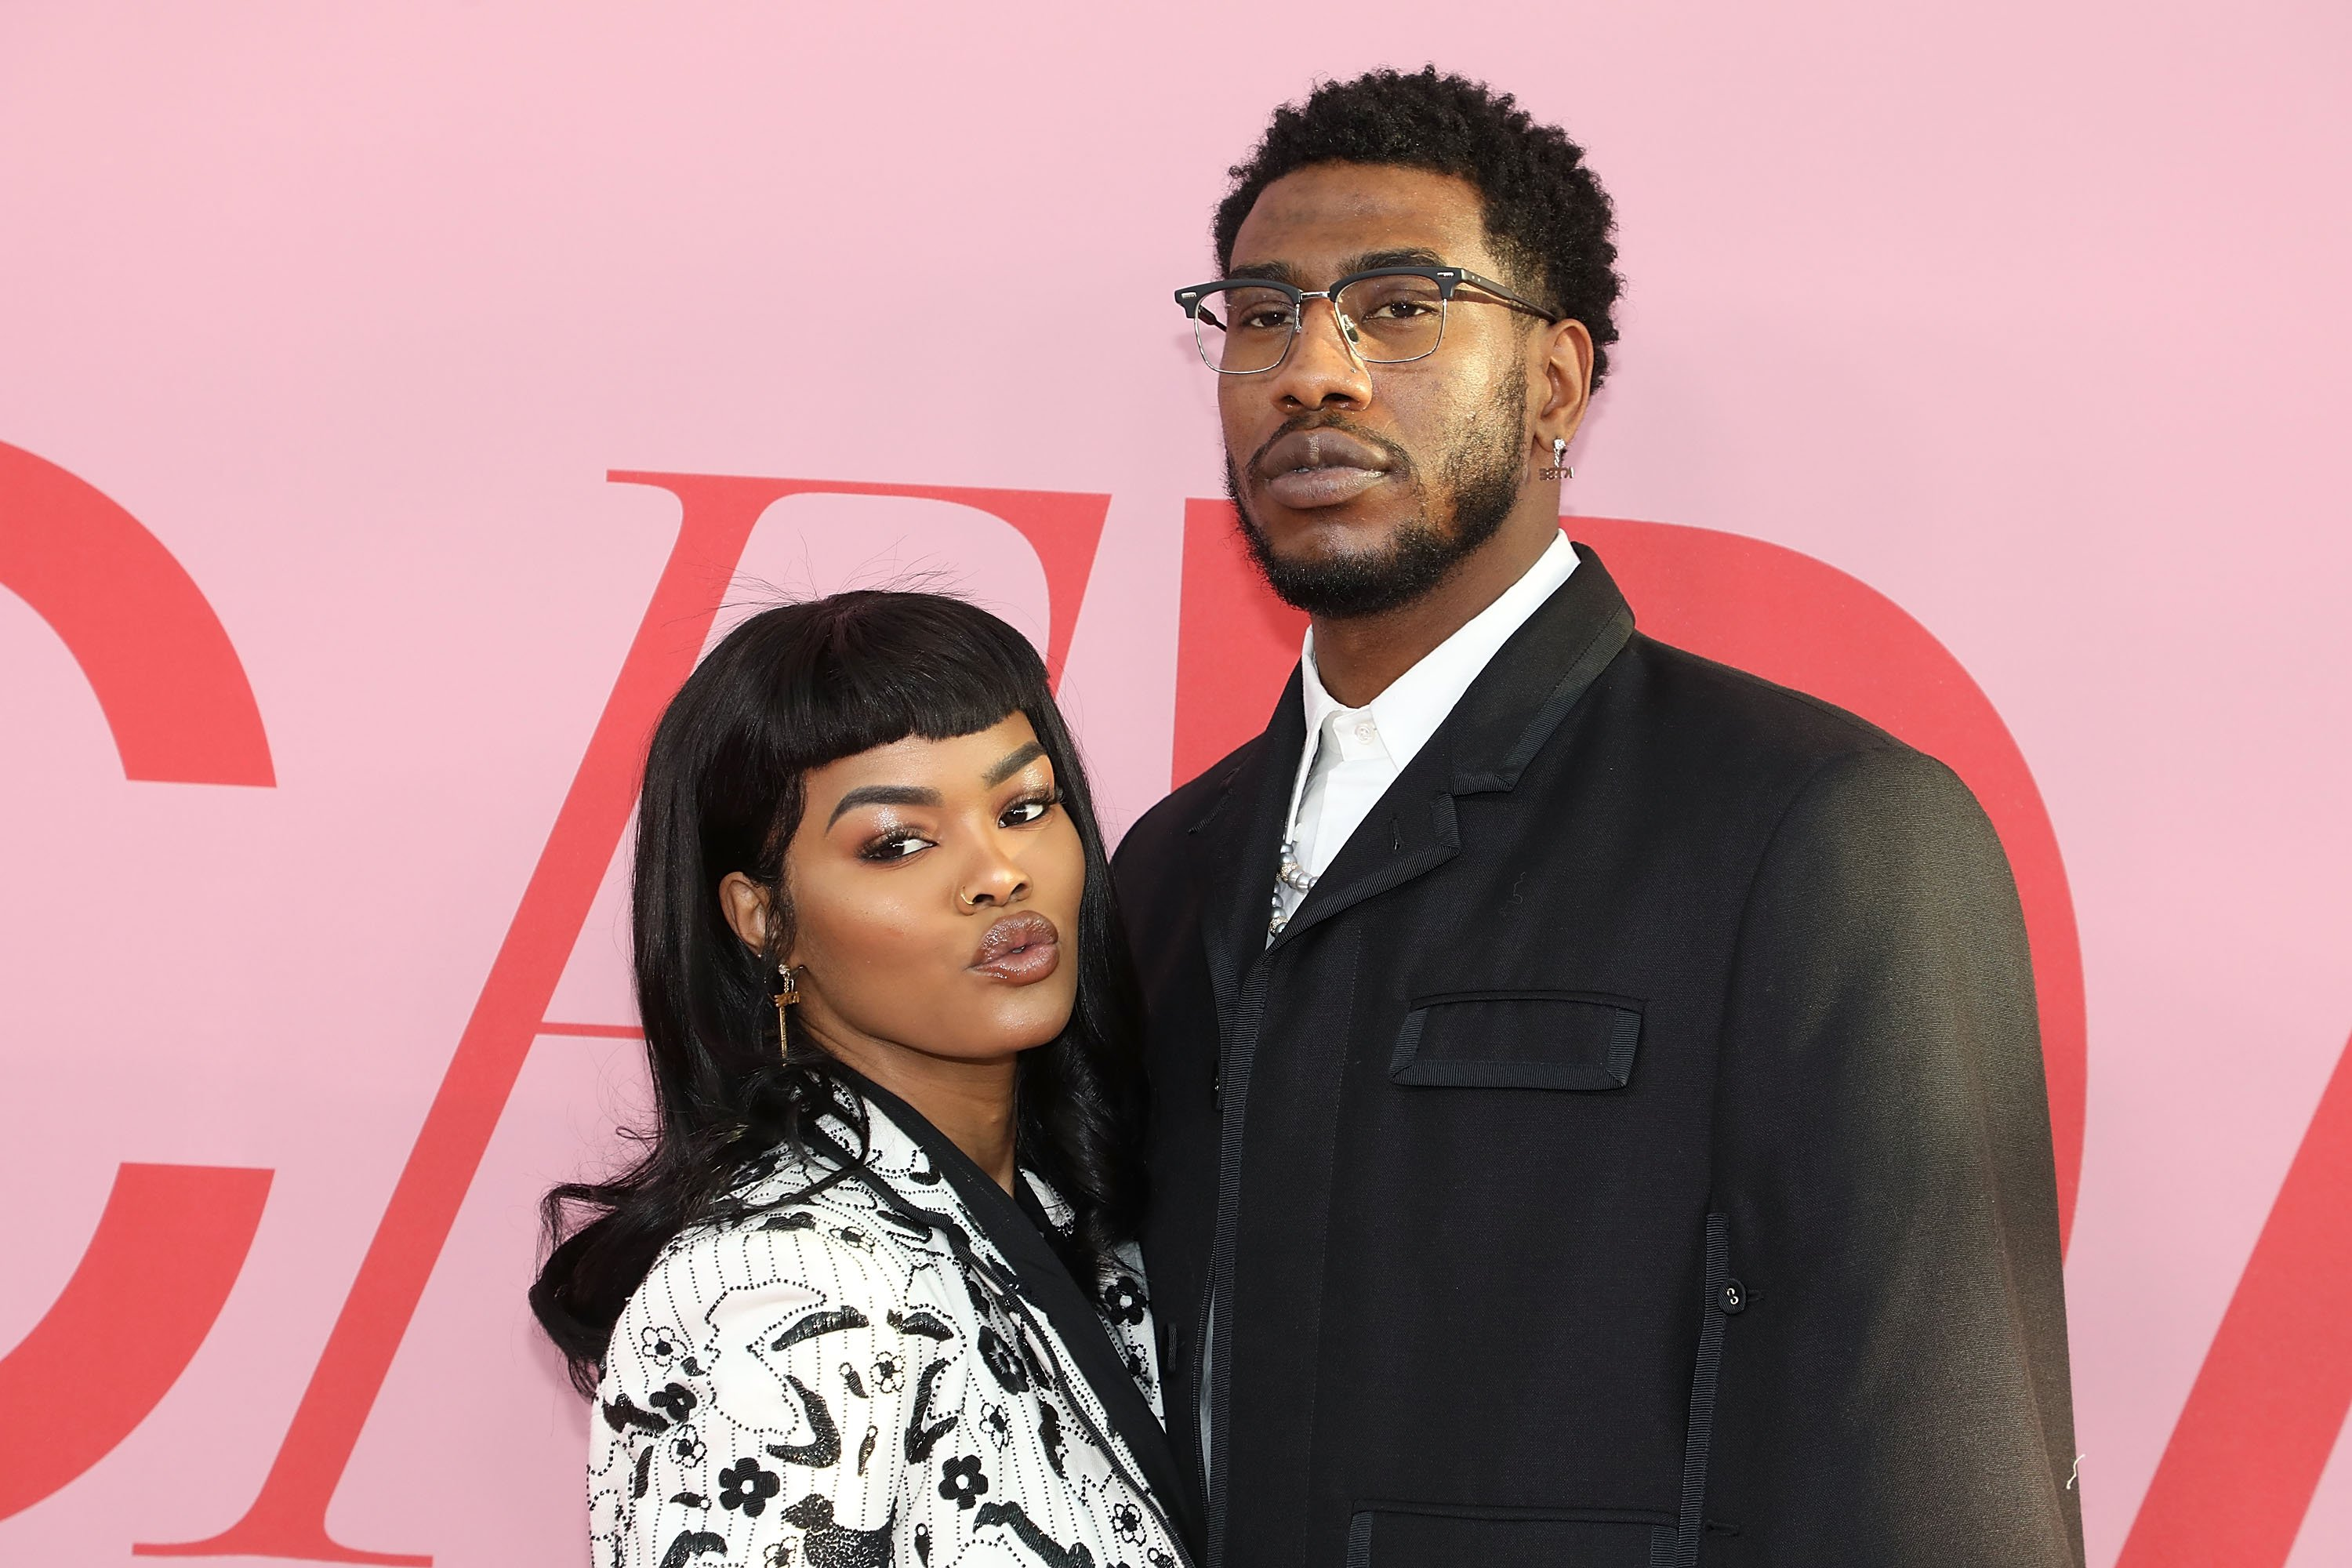 Teyana Taylor and Iman Shumpert at the 2019 CFDA Awards at The Brooklyn Museum on June 3, 2019 in New York City.|Source: Getty Images